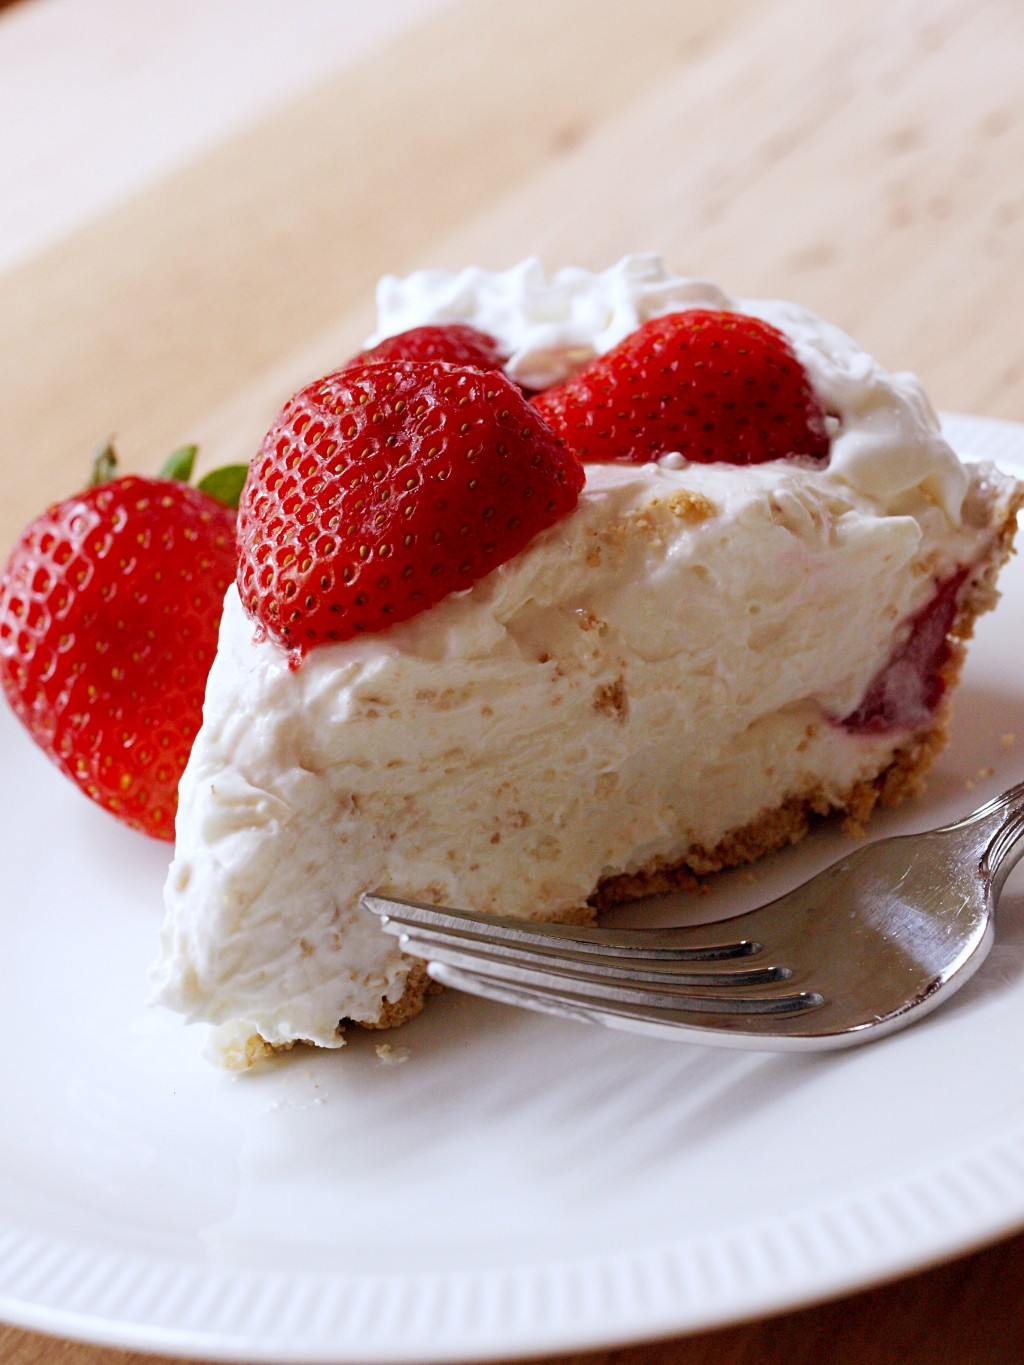 Elegant Cheesecake In 5 Minutes – Great Dessert For Any Occasion